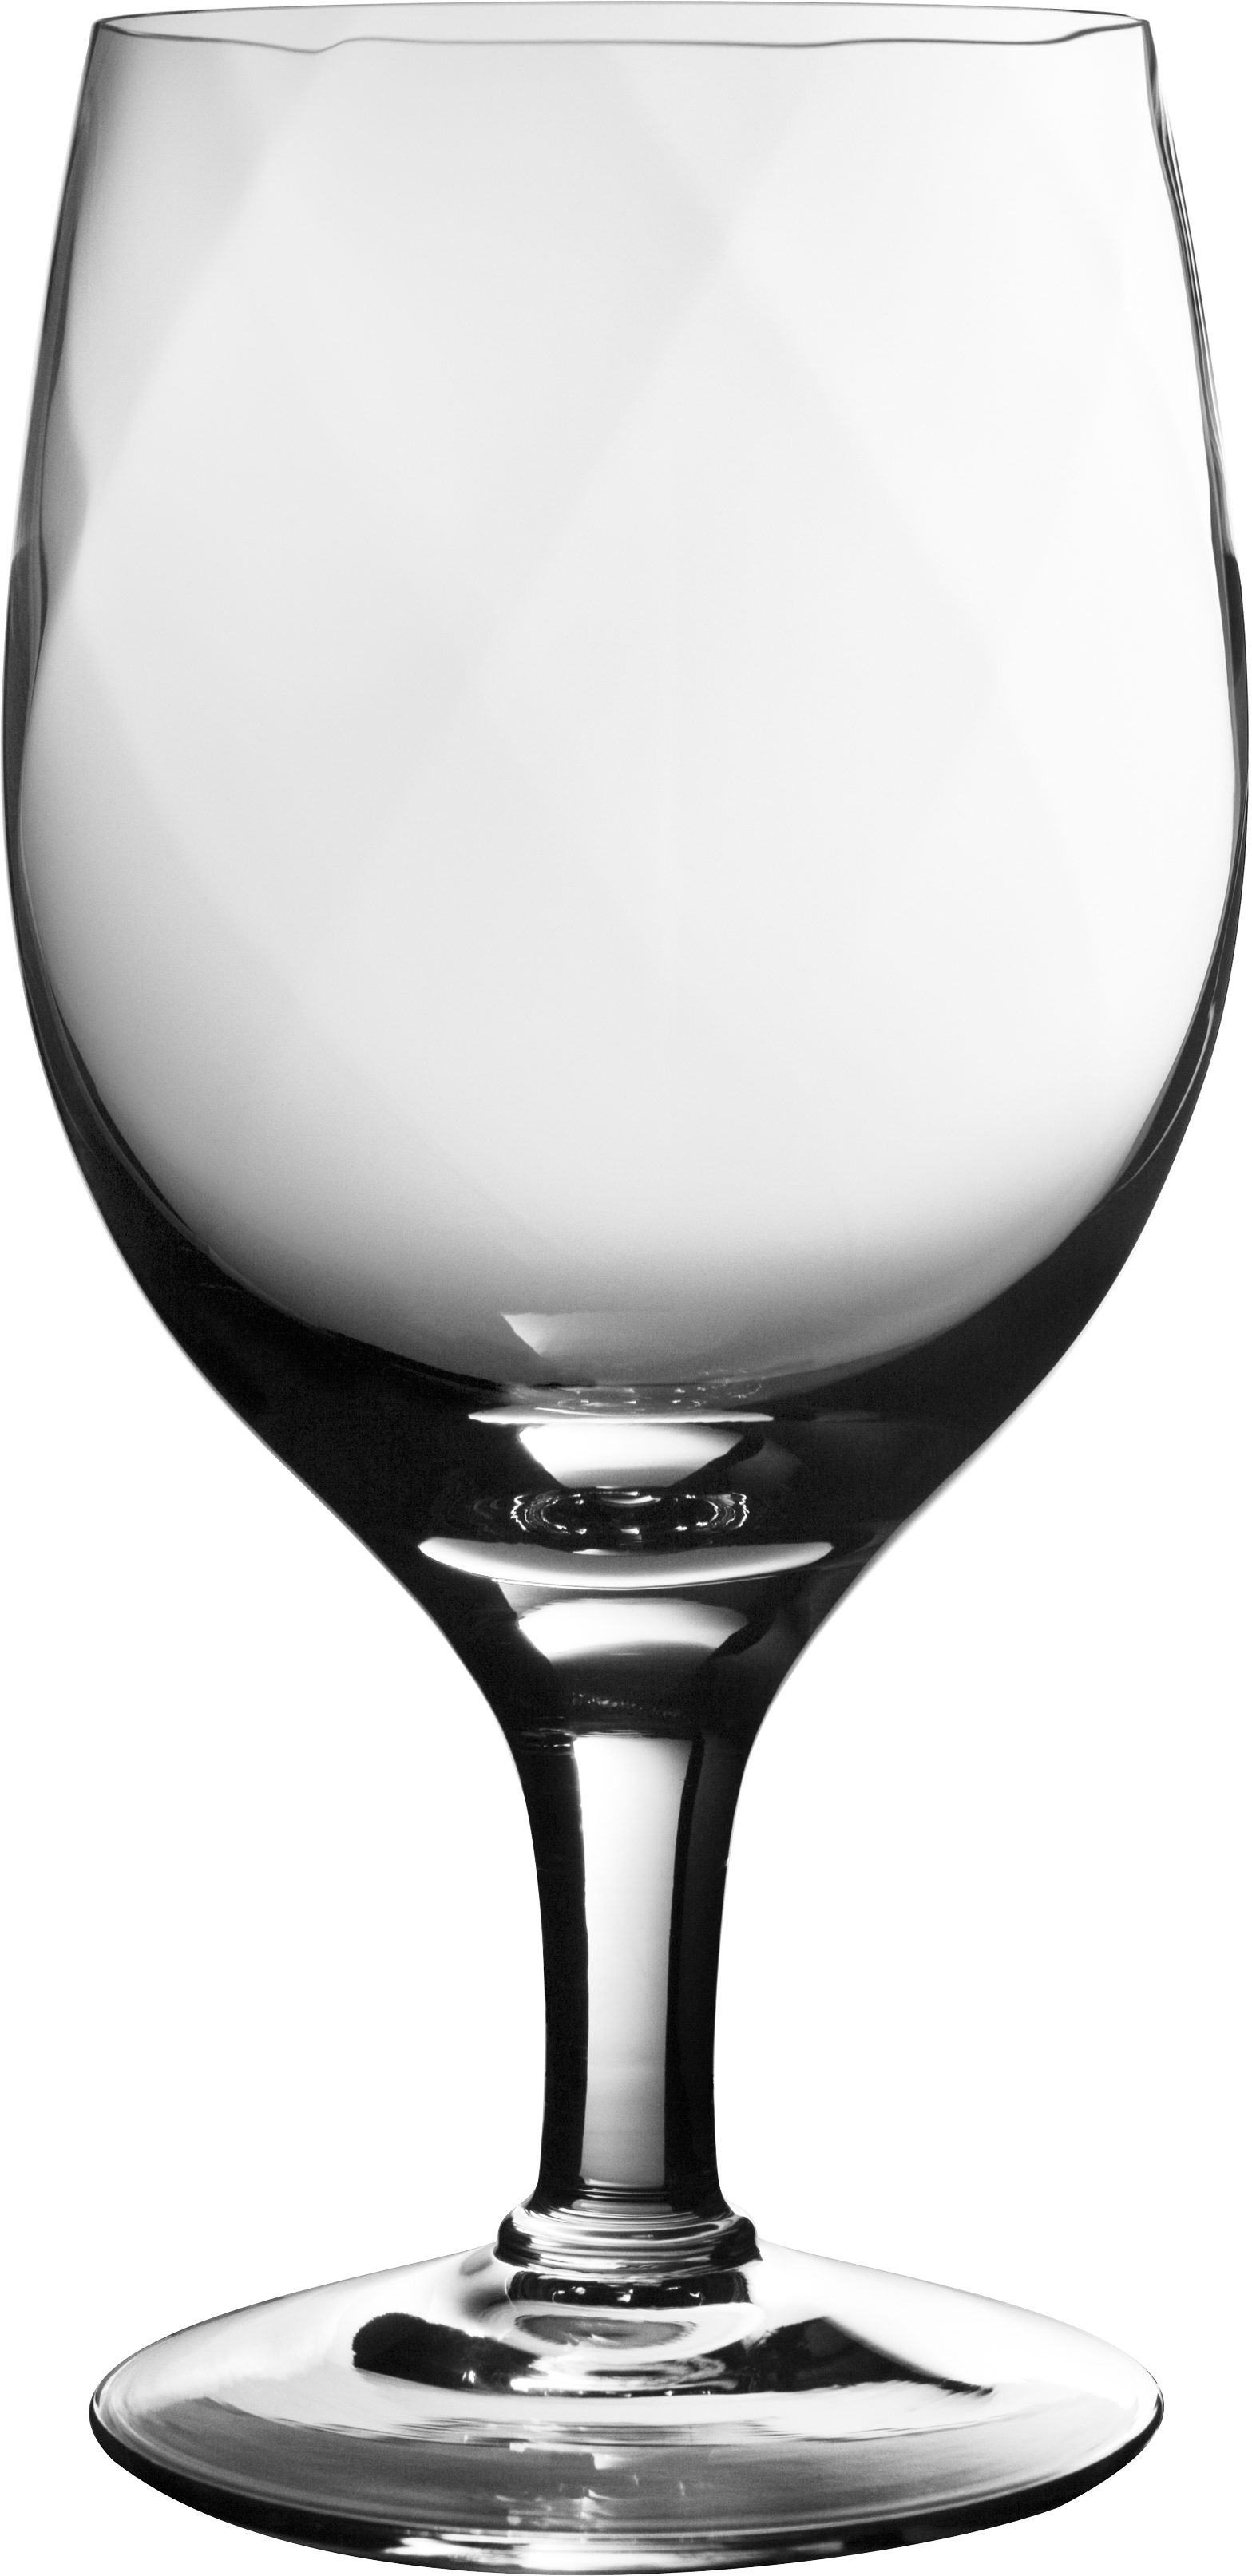 Cat wine glass clipart jpg freeuse library Empty Wine Glass Twelve   Isolated Stock Photo by noBACKS.com jpg freeuse library